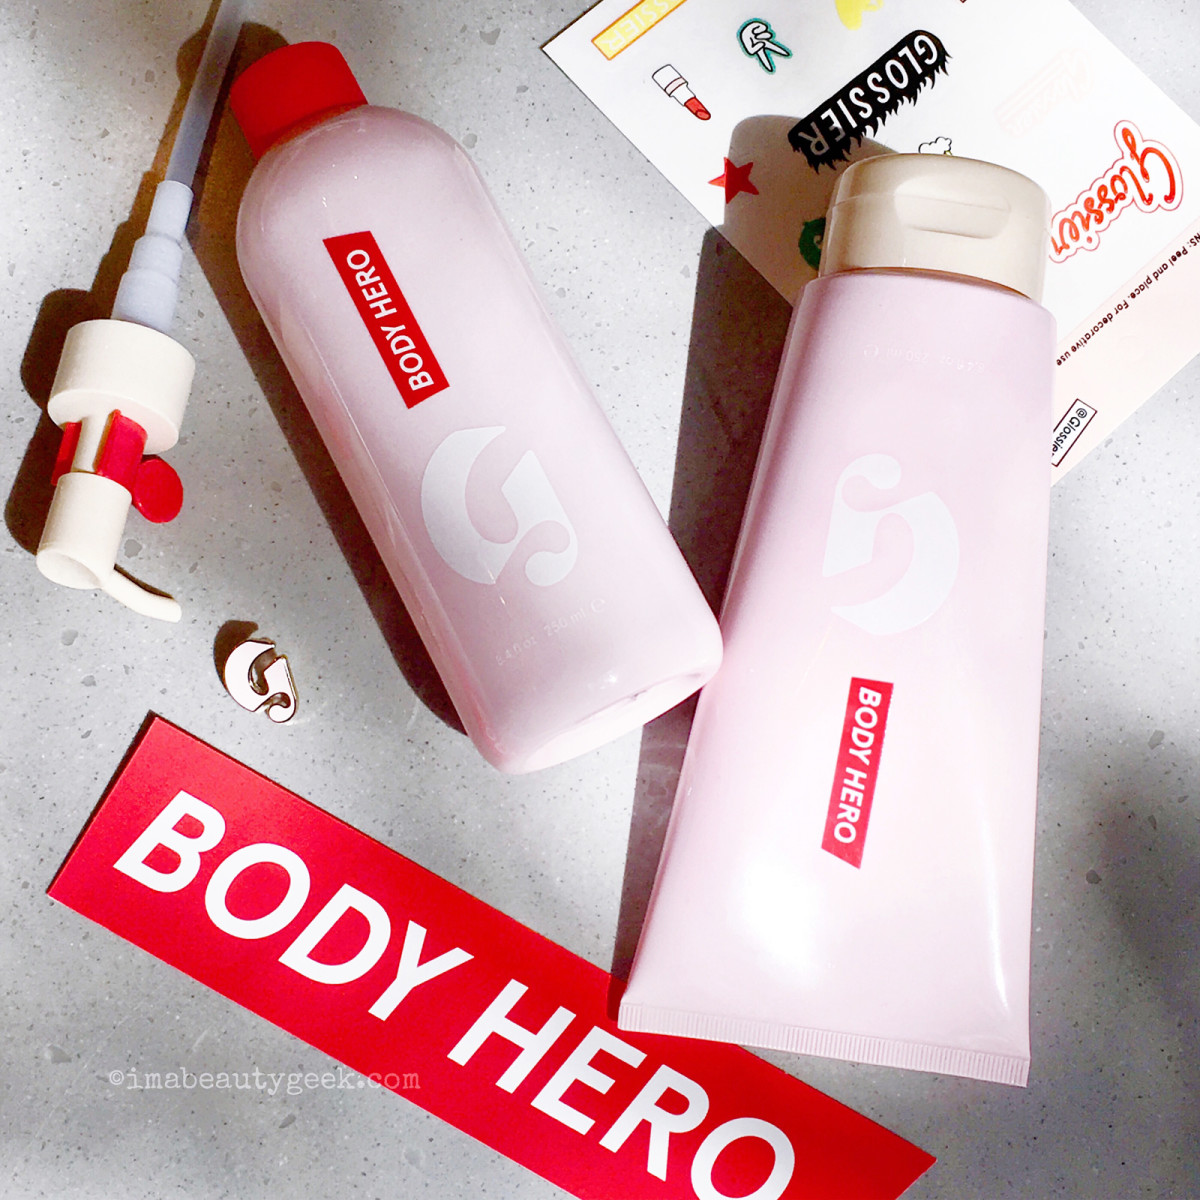 Glossier Body Hero Daily Oil Wash and Daily Perfecting Cream